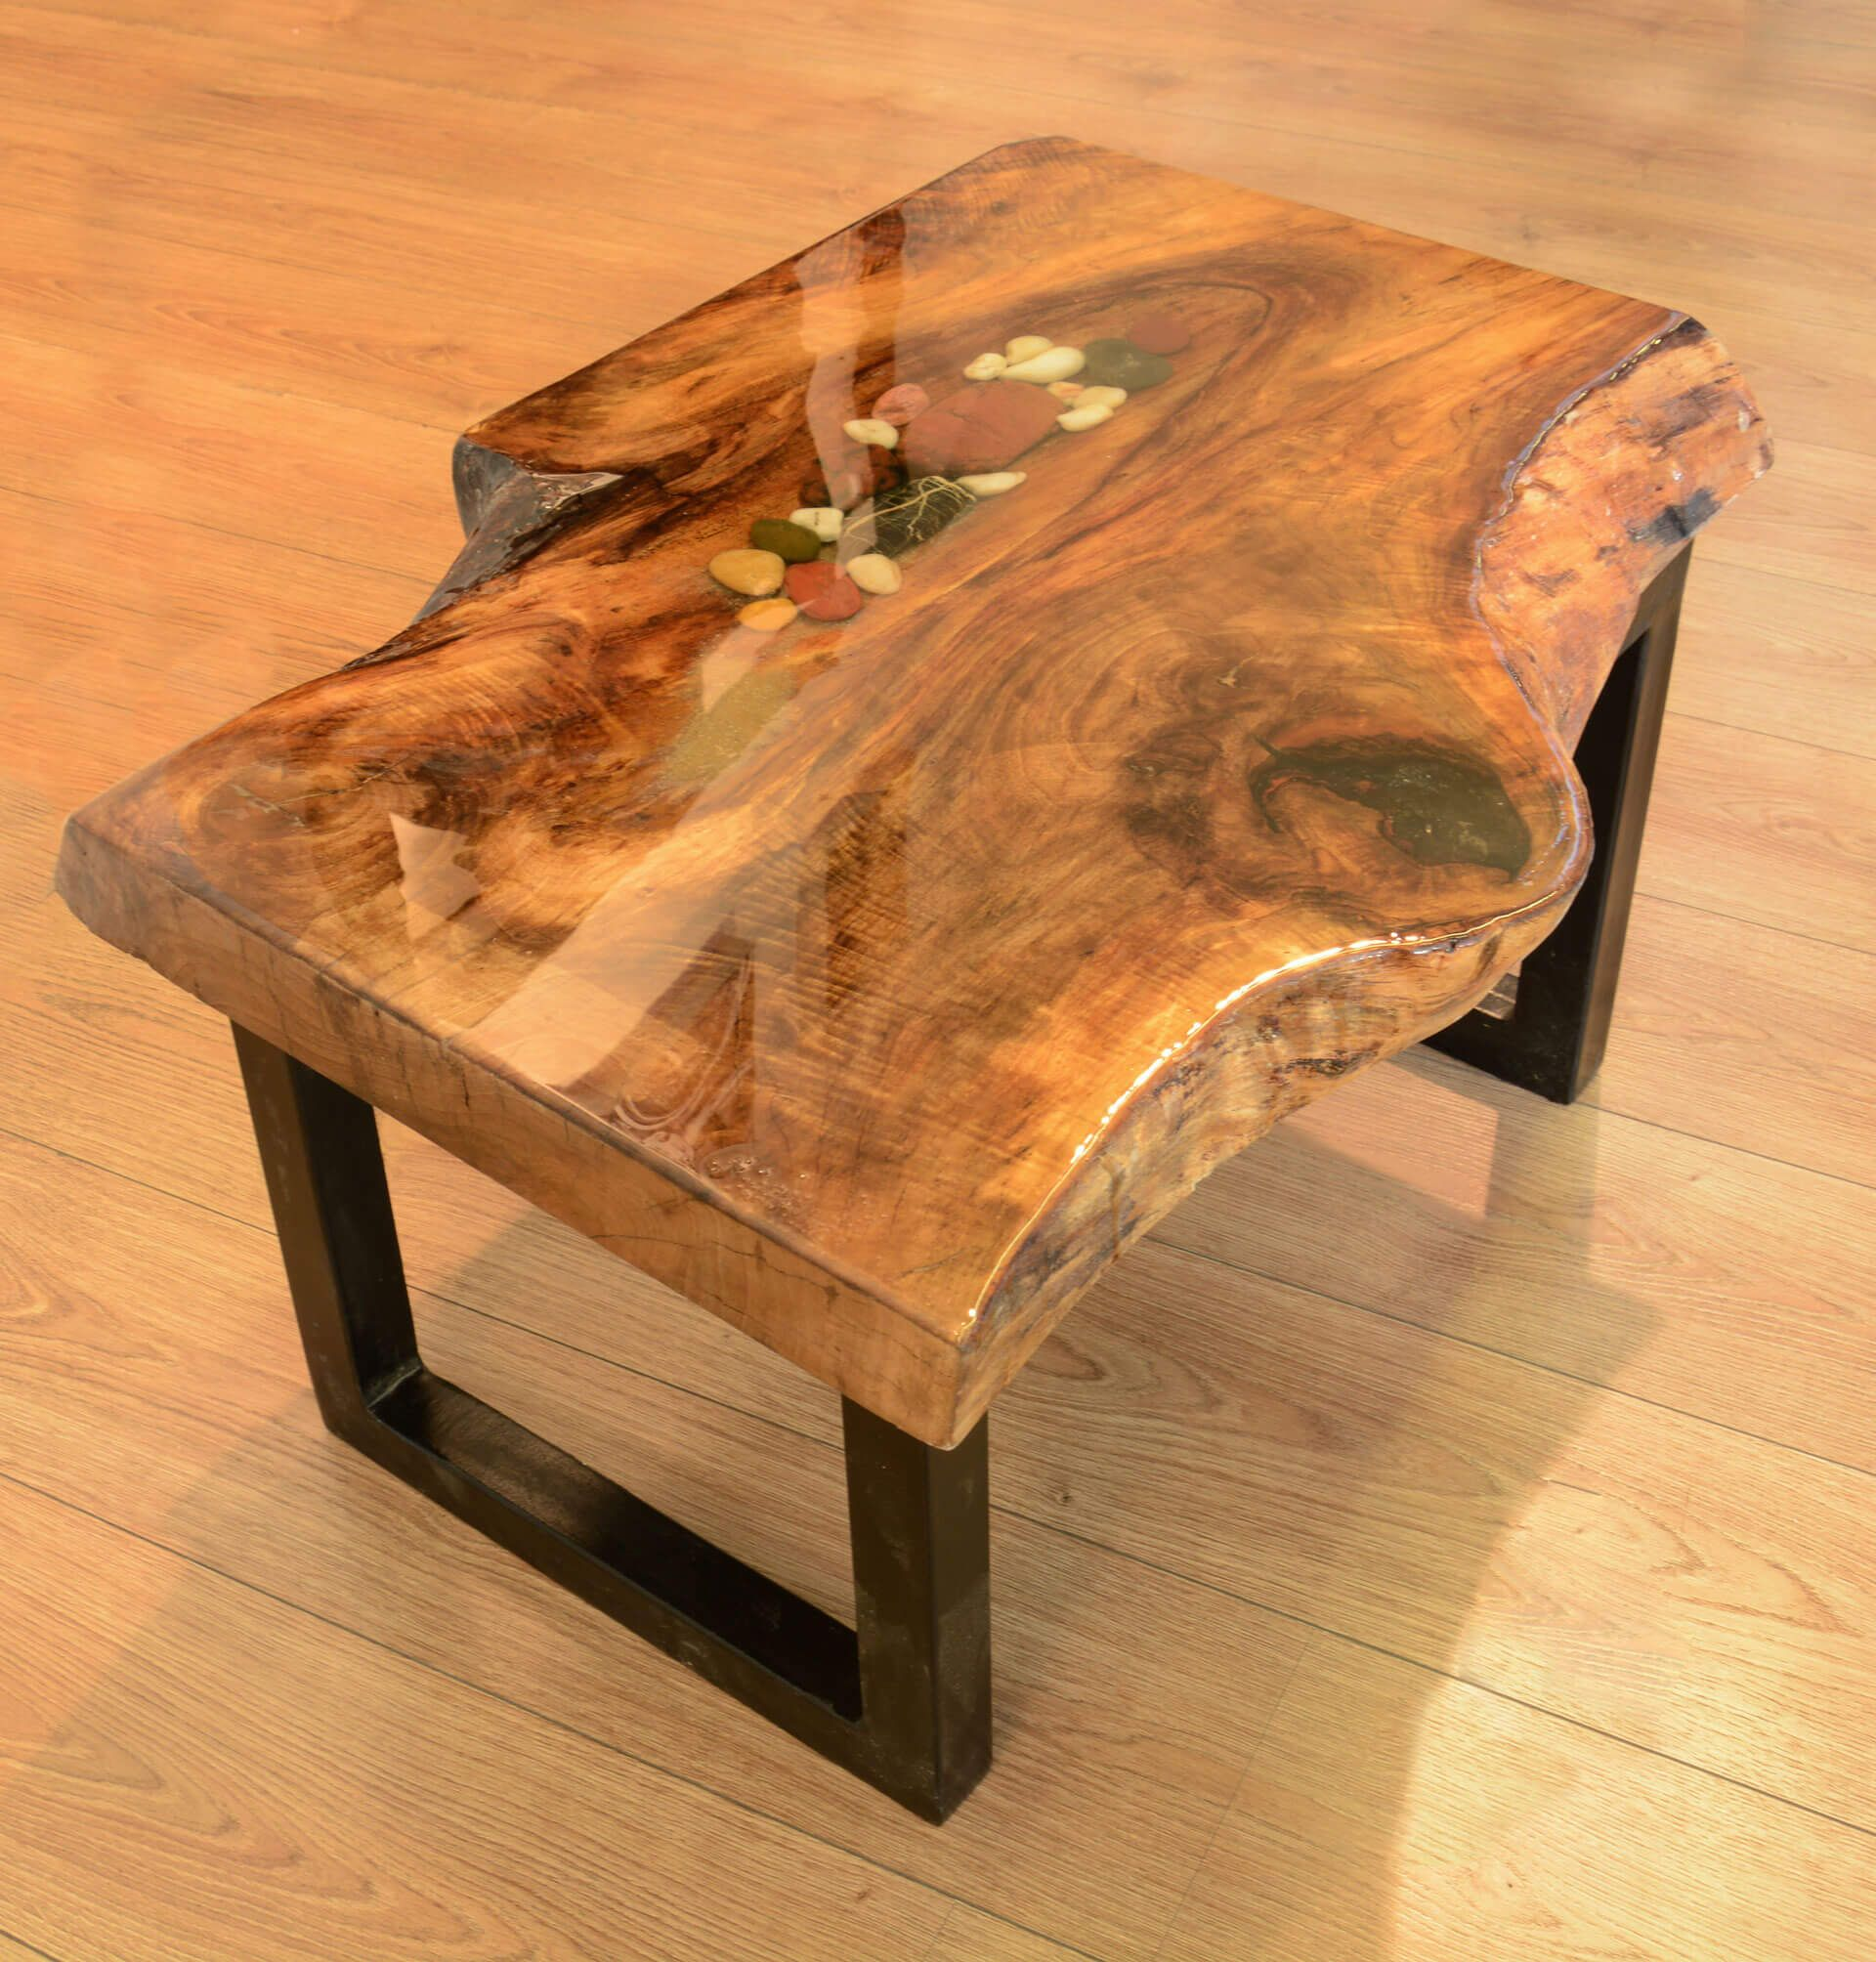 Walnut wood resin river rock coffee table